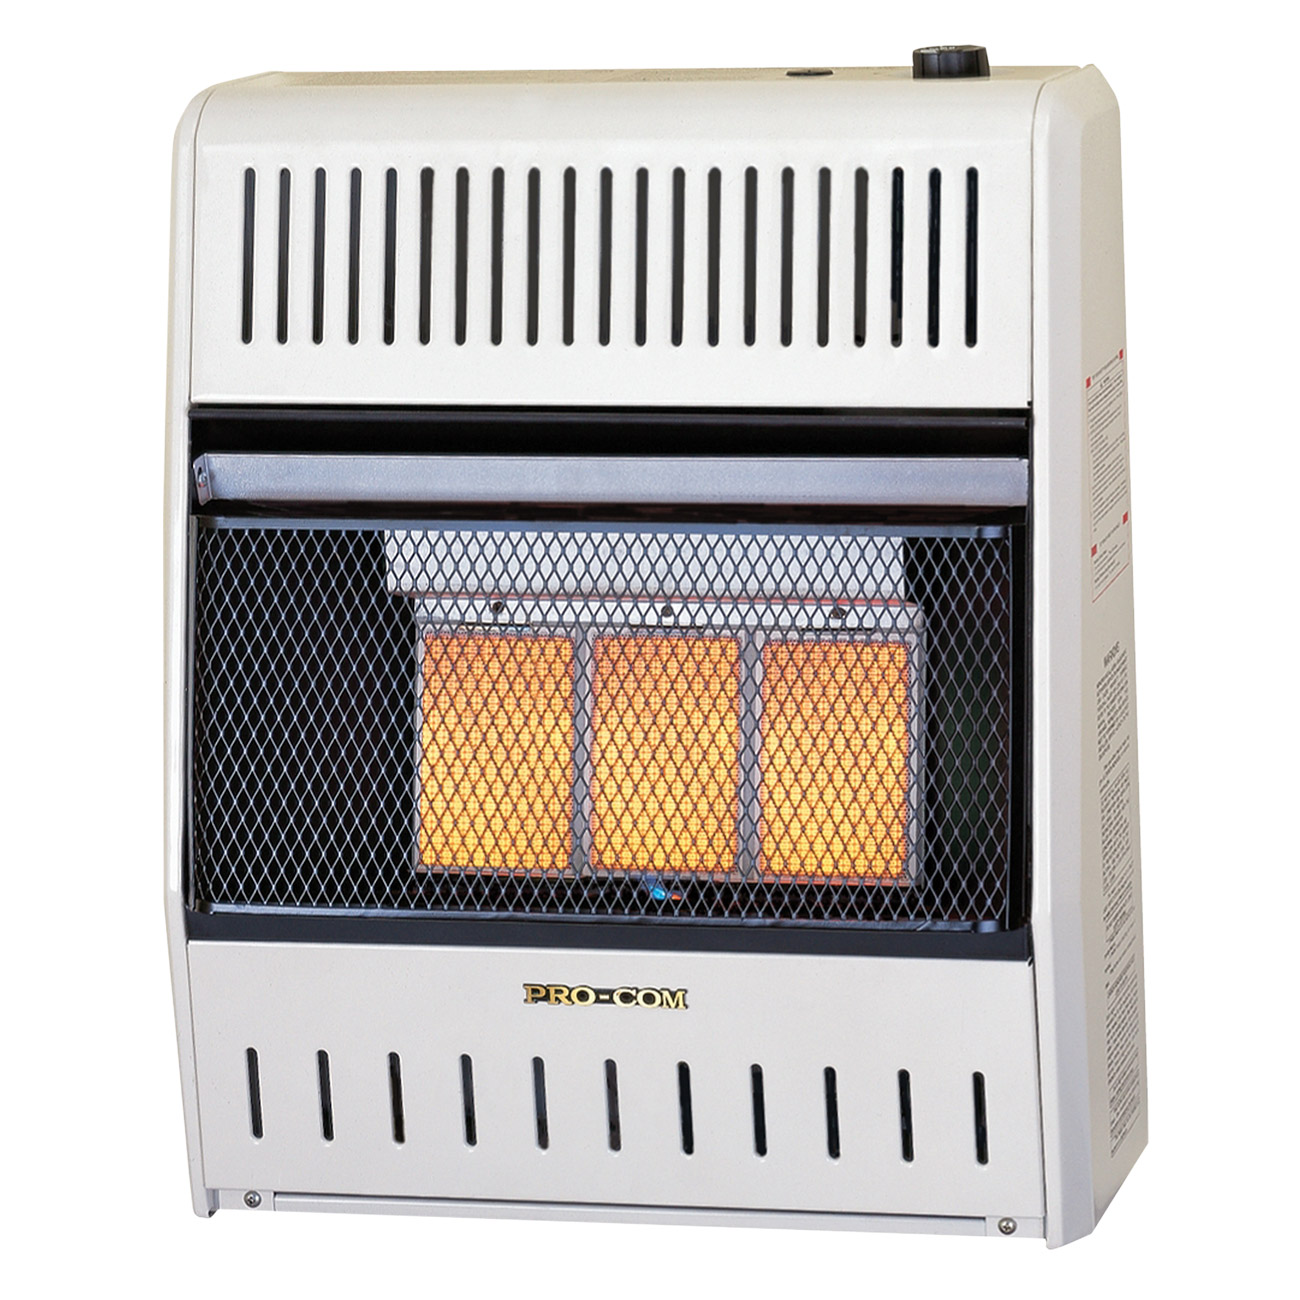 Dual Fuel Ventless Infrared Heater Wall Heater 20 000